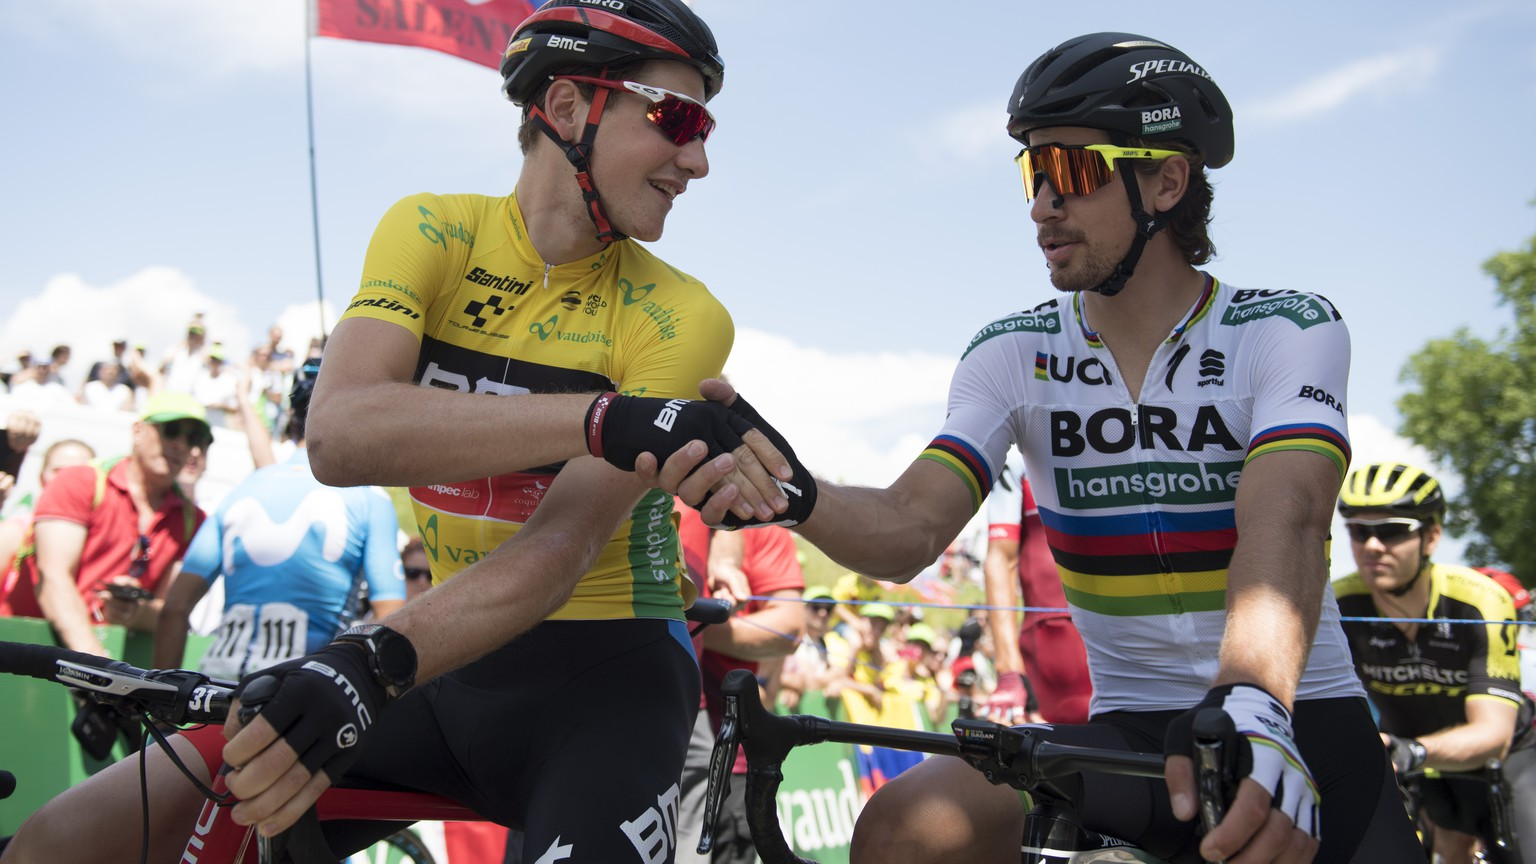 Switzerland's Stefan Kueng of BMC Racing Team in the yellow leader jersey, left, and Slovakia's Peter Sagan of the Bora-Hansgrohe Team, right, before the 2nd stage, a 155 km round course in Frauenfeld, Switzerland, at the 82. Tour de Suisse UCI ProTour cycling race, on Sunday, June 10, 2018. (KEYSTONE/Gian Ehrenzeller)